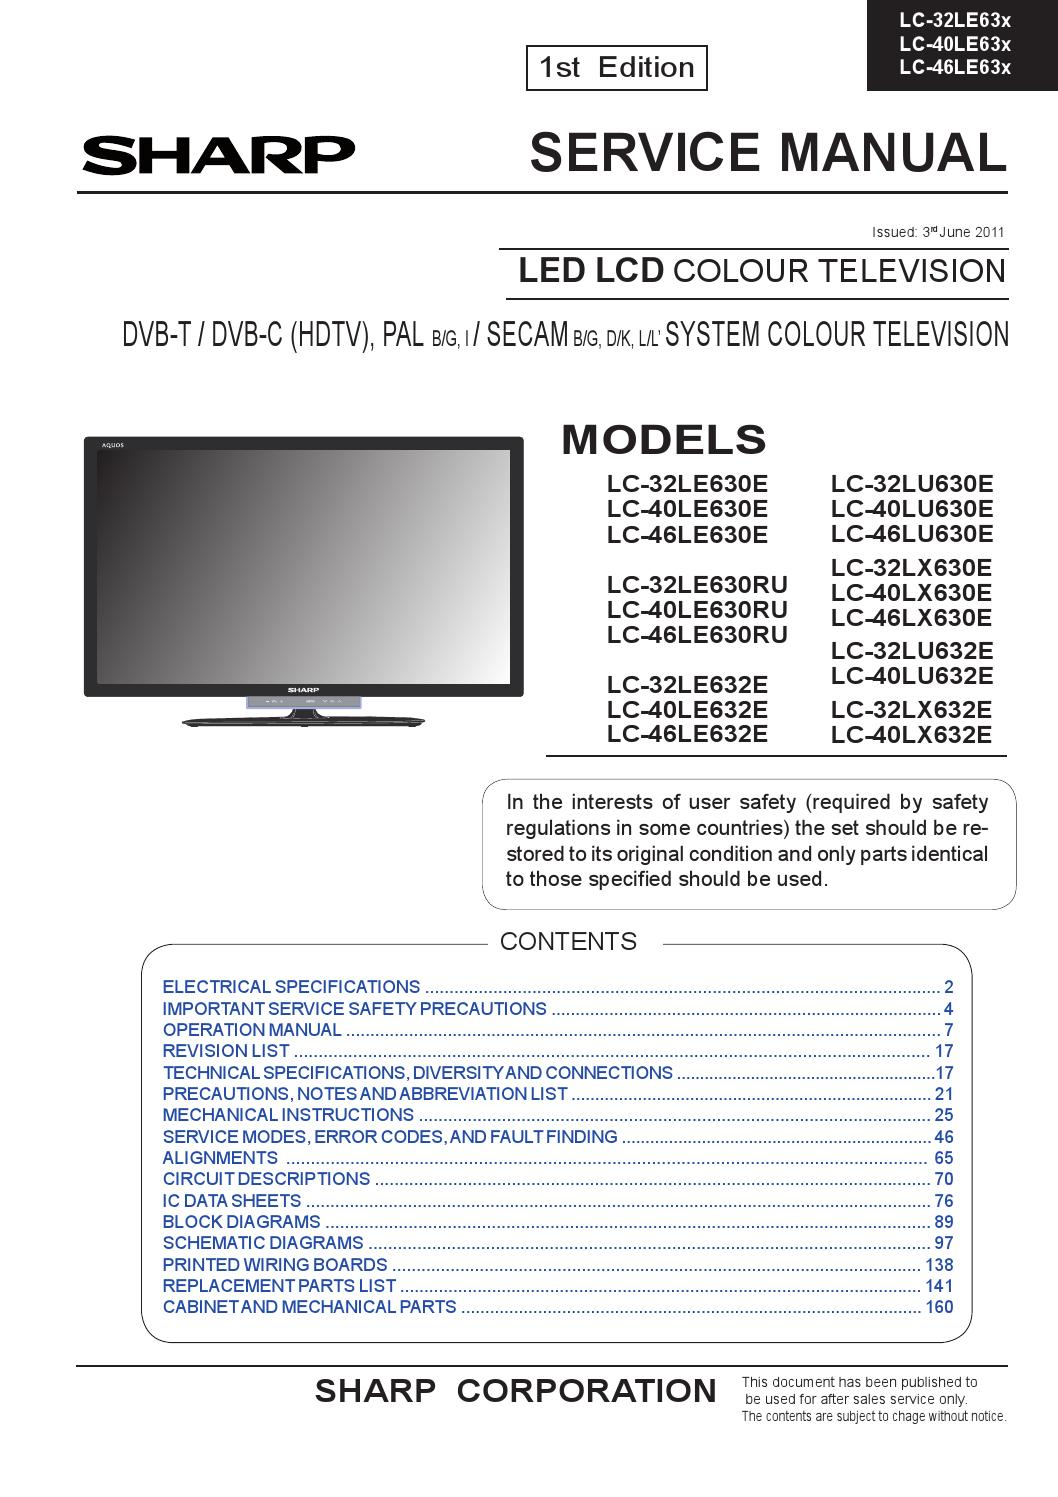 Manual De Servi U00e7o Tv Sharp Led Lcd Diversos Modelos Linha Lc By Portal Da Eletr U00f4nica